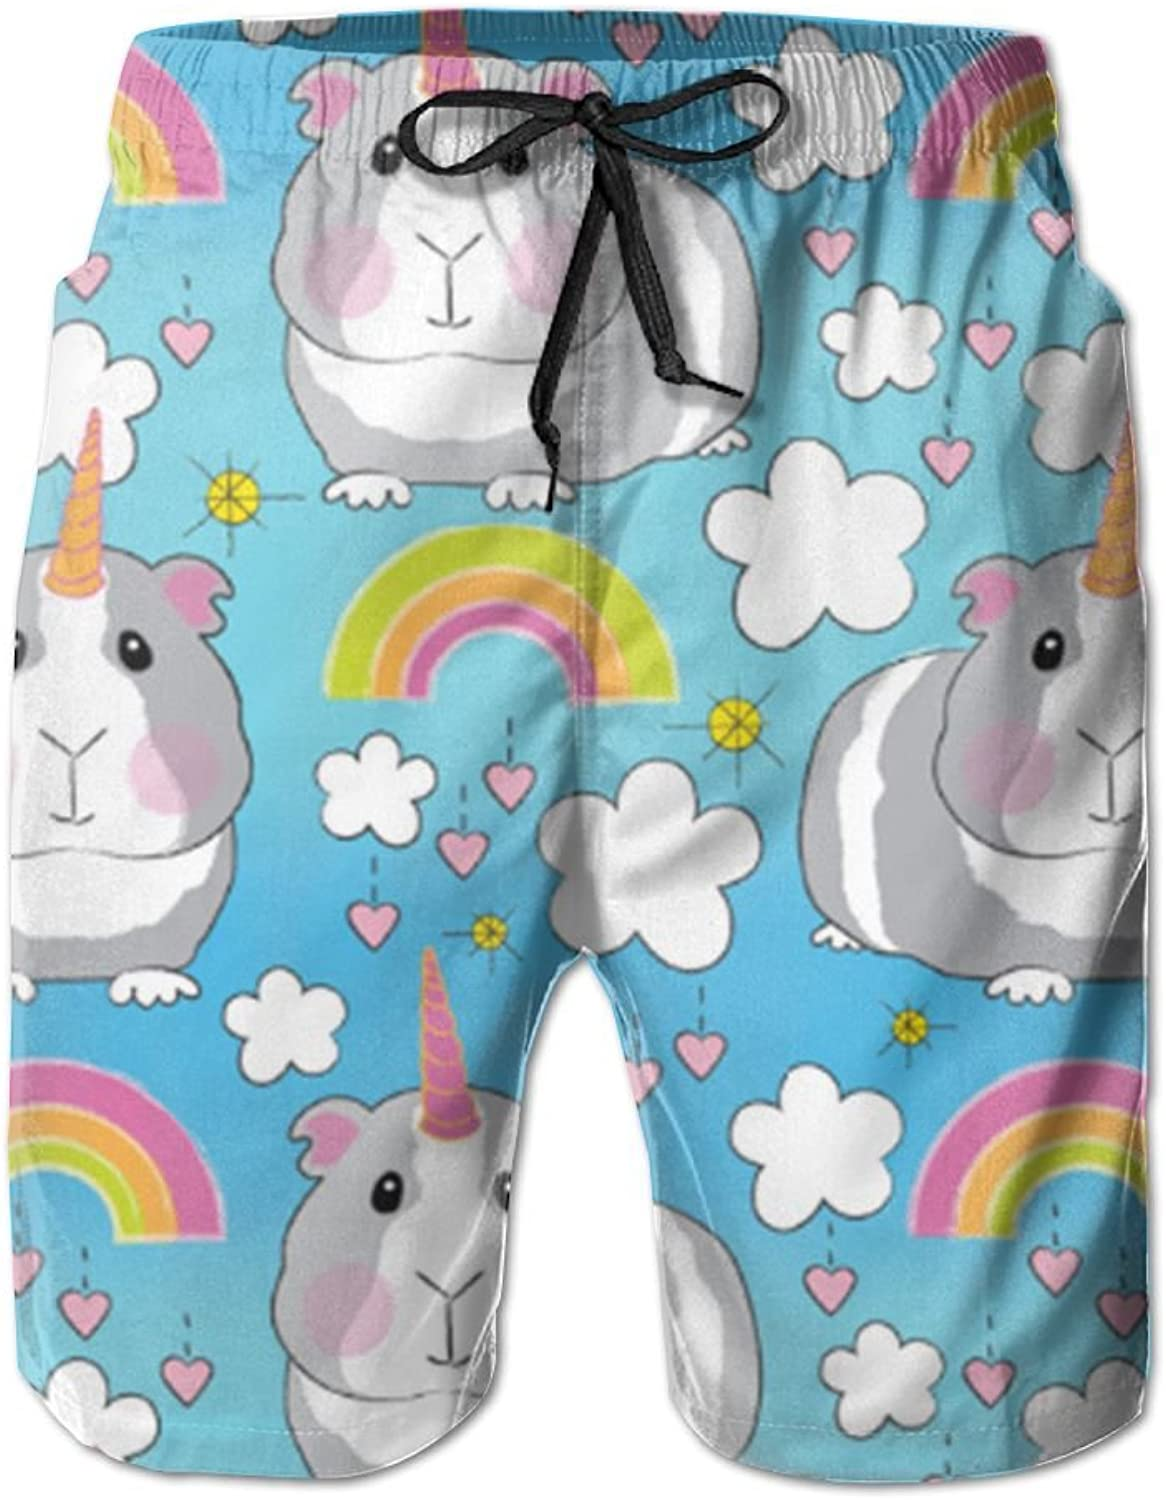 Male Guinea Pig Unicorns-and-Rainbows Tropical Quick Dry Board Shorts Swimming Volley Beach Trunks